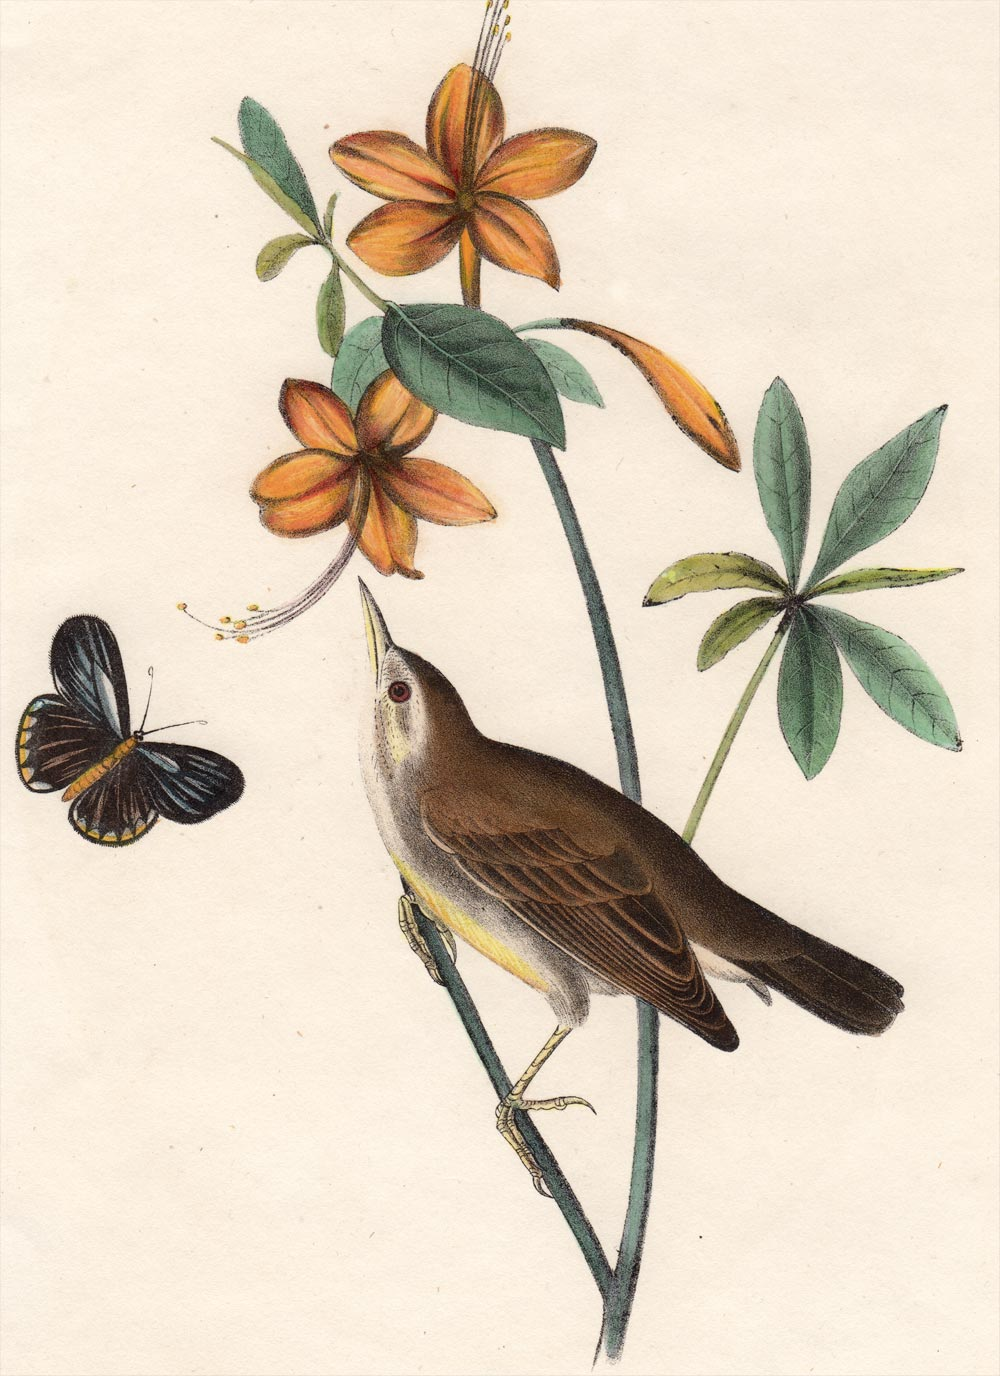 Audubon First Edition Octavo Print for sale Pl 104 Swainson's Swamp Warbler, detail